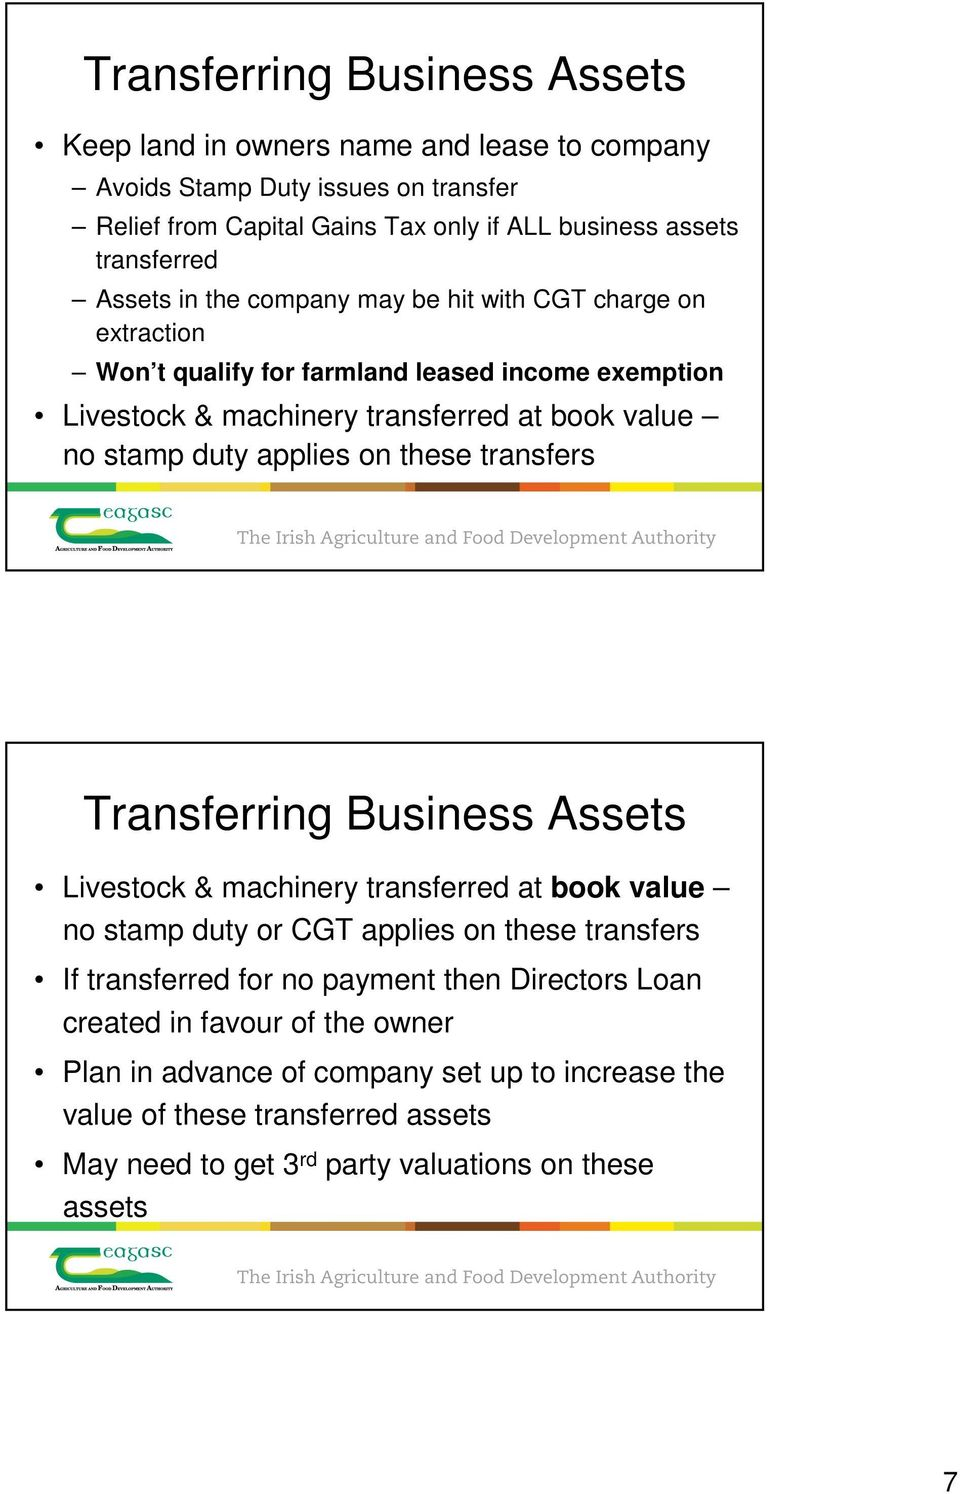 applies on these transfers Transferring Business Assets Livestock & machinery transferred at book value no stamp duty or CGT applies on these transfers If transferred for no payment